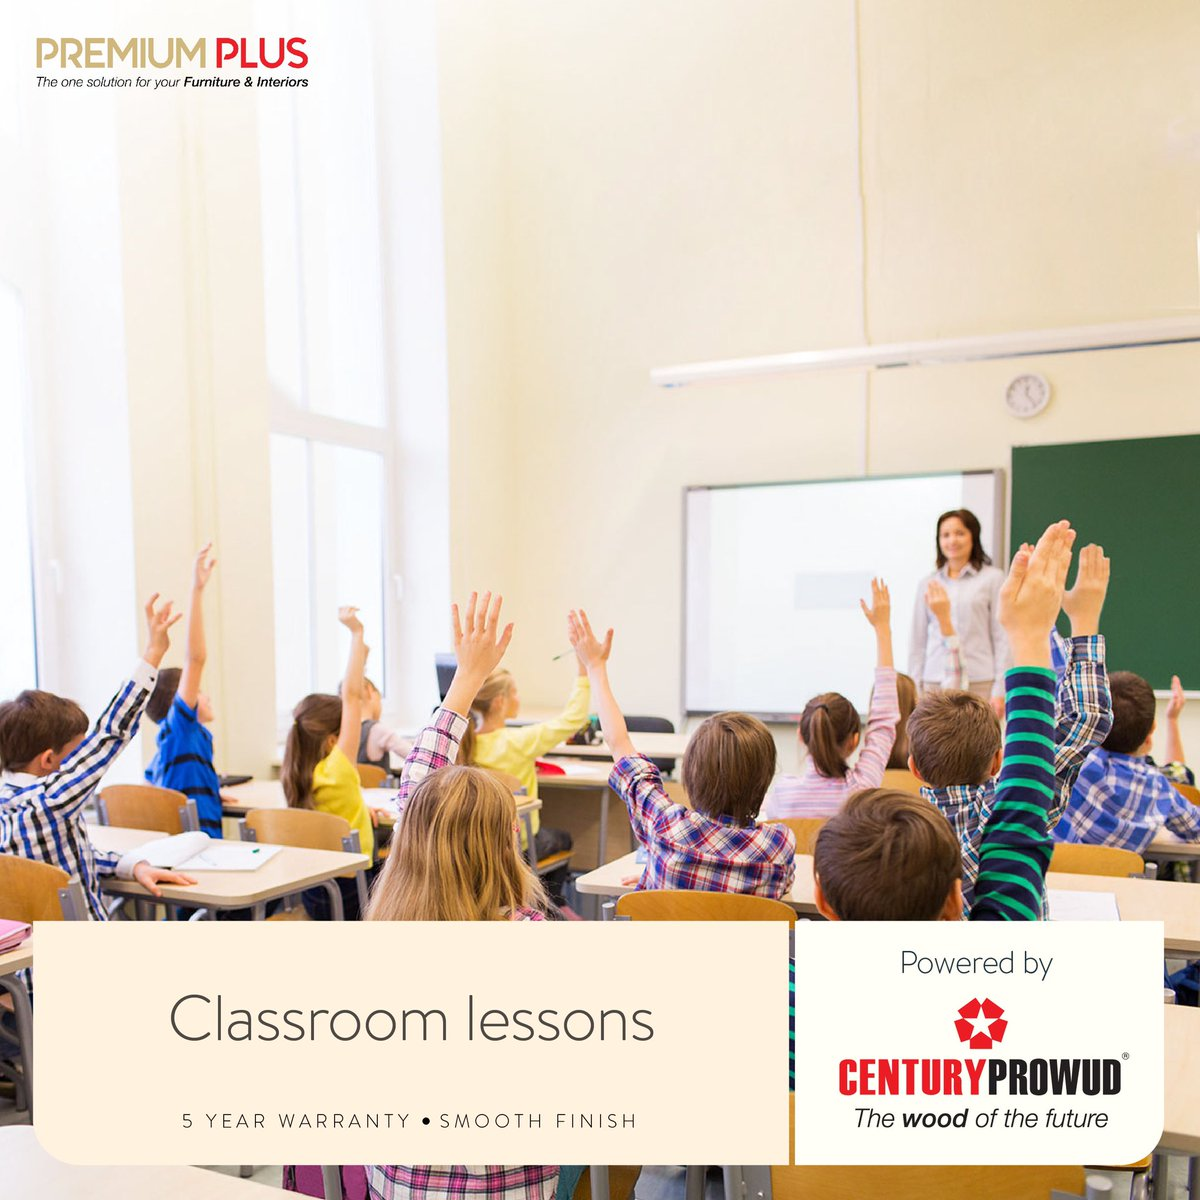 #Classrooms or #Boardrooms, #decor from #CenturyProwud fits seamlessly everywhere. Choose us because we are 40% cheaper than a #branded #plywood and work better . Know more: https://bit.ly/3296sKP #PremiumPlus #TheWoodoftheFuture #interior #designpic.twitter.com/EGuEJepadq